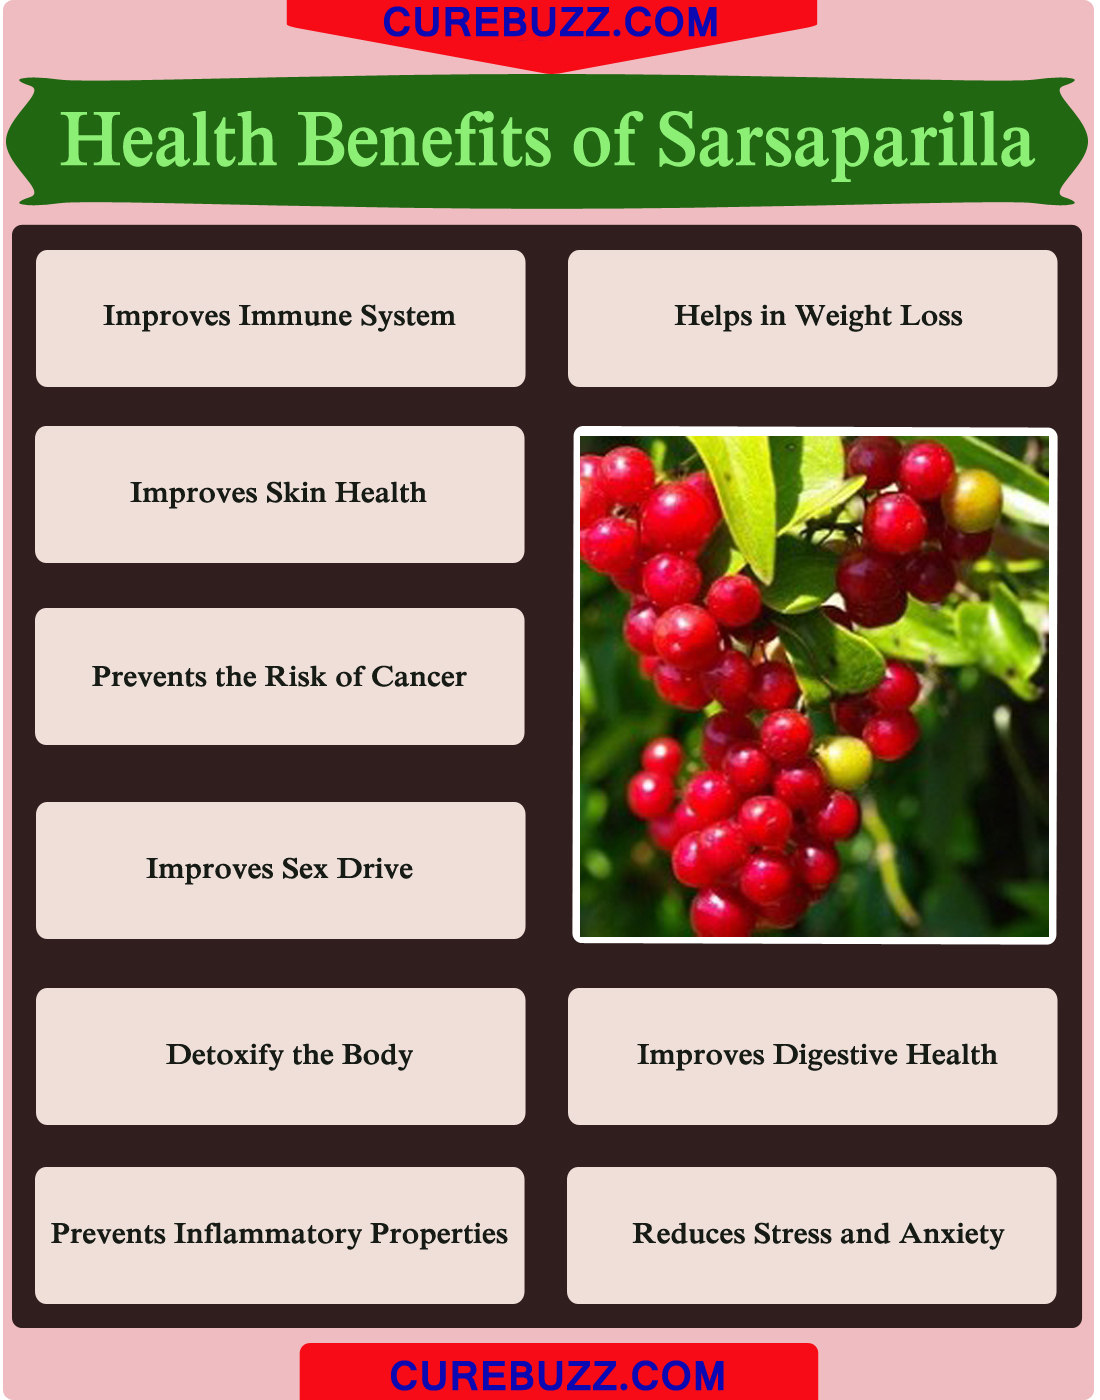 Health Benefits of Sarsaparilla